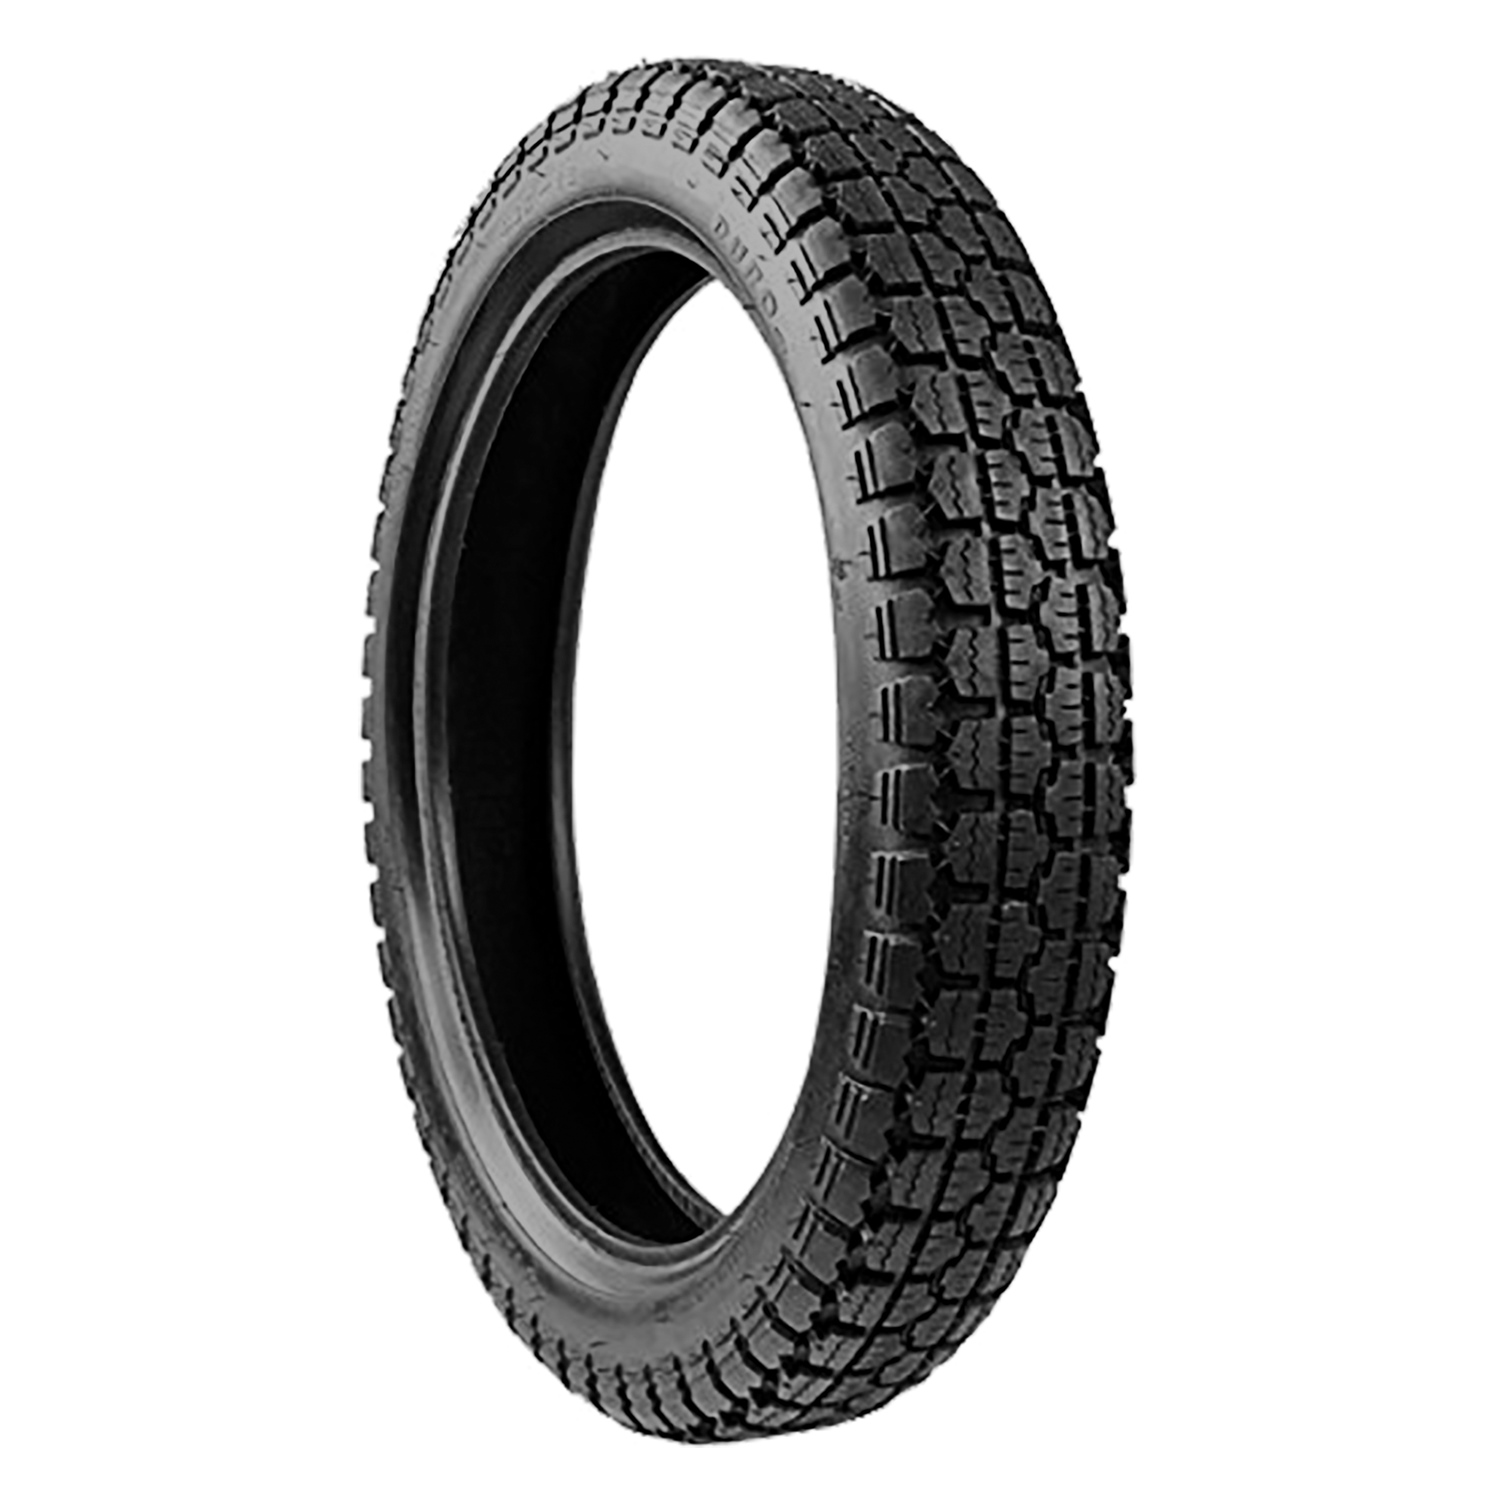 Duro HF308 Vintage Tire  Blackwall Size 4.00-19   #113060